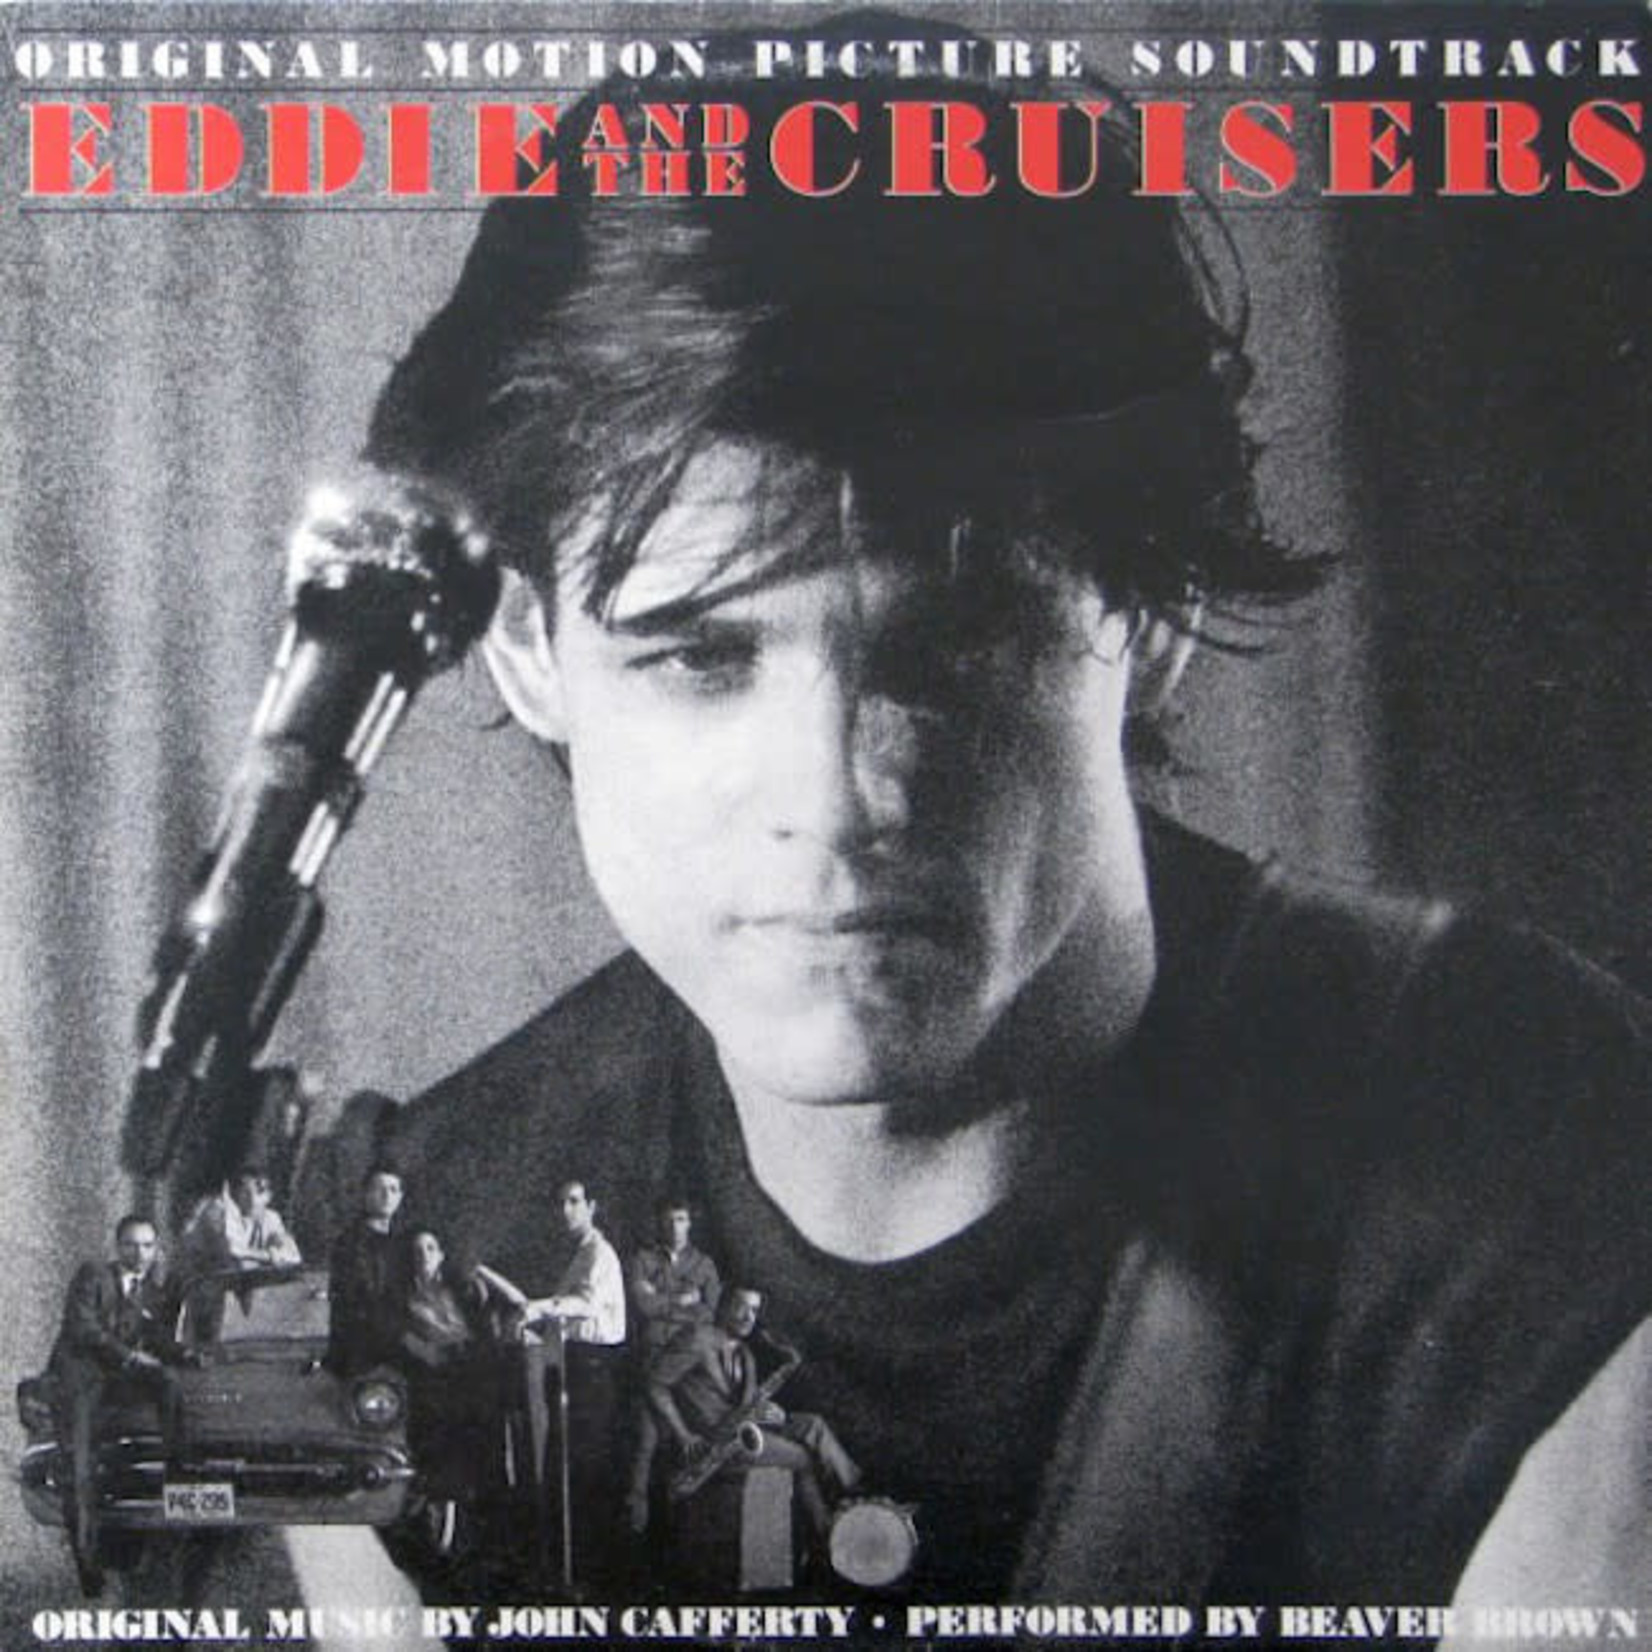 [Vintage] Beaver Brown: Eddie and the Cruisers (Soundtrack)